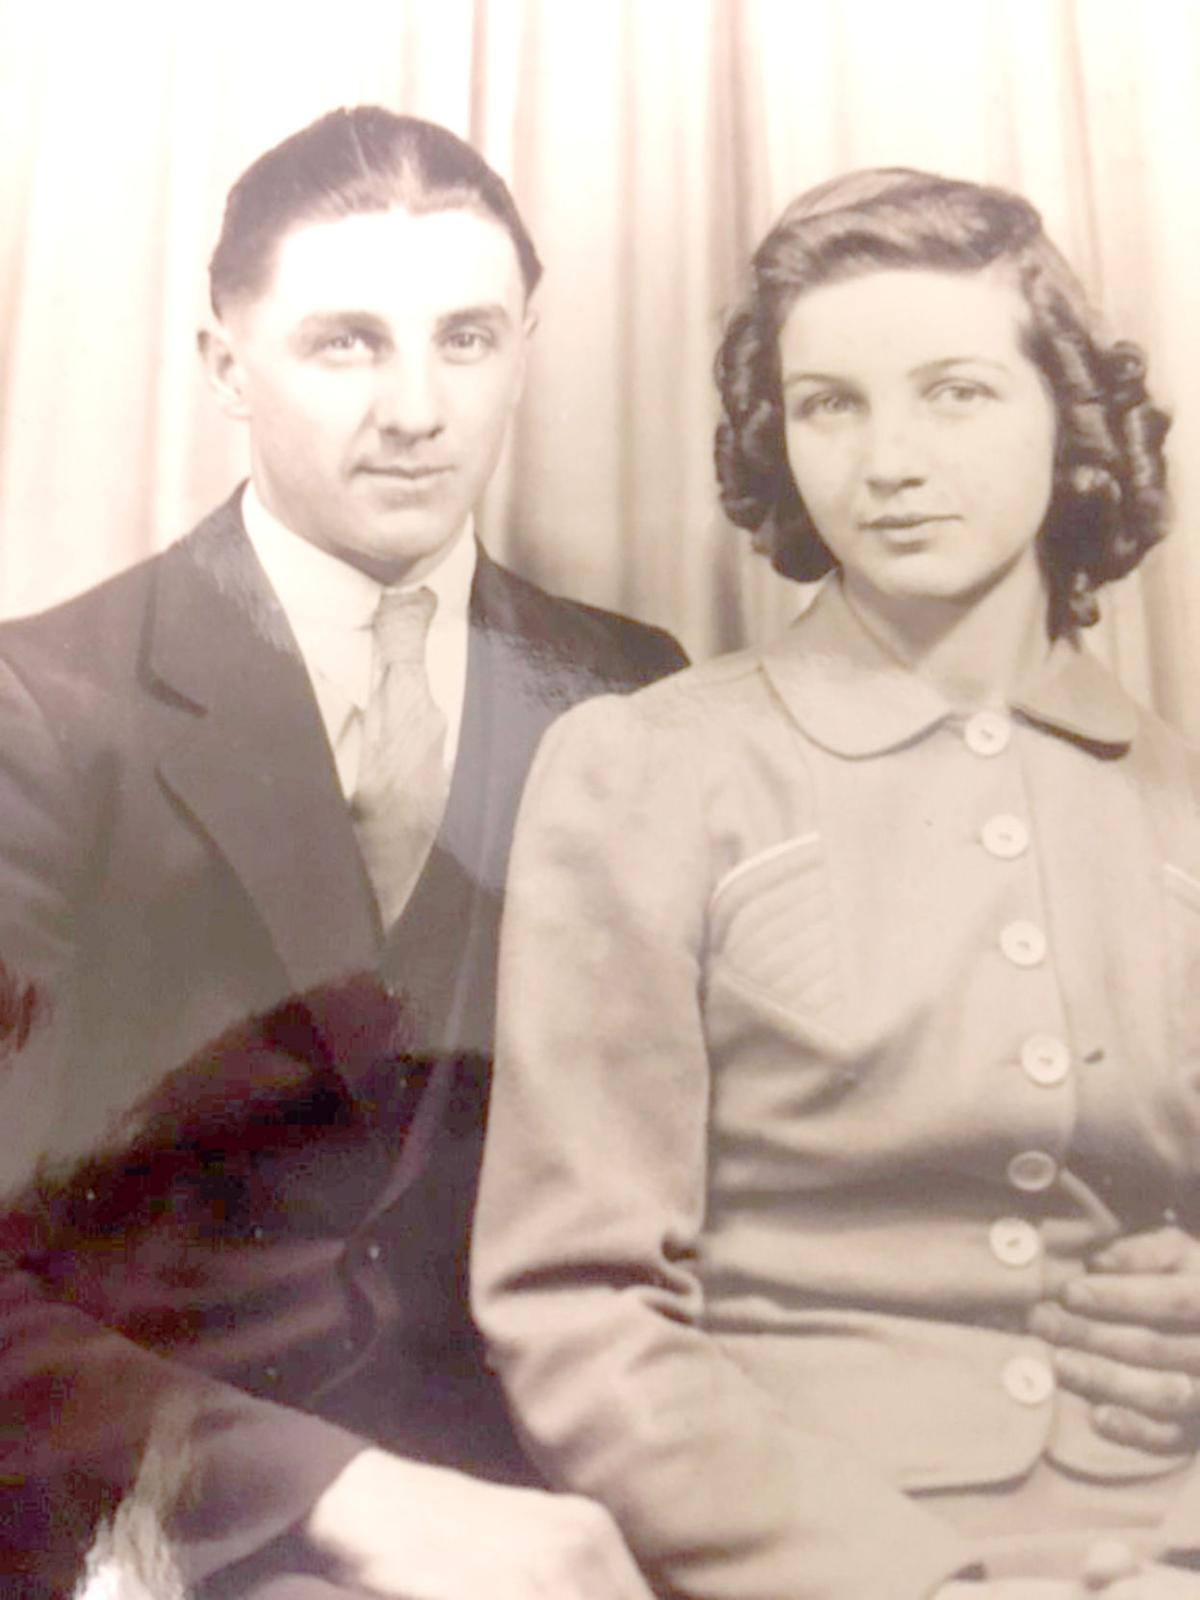 George and Thelma Beam in 1942